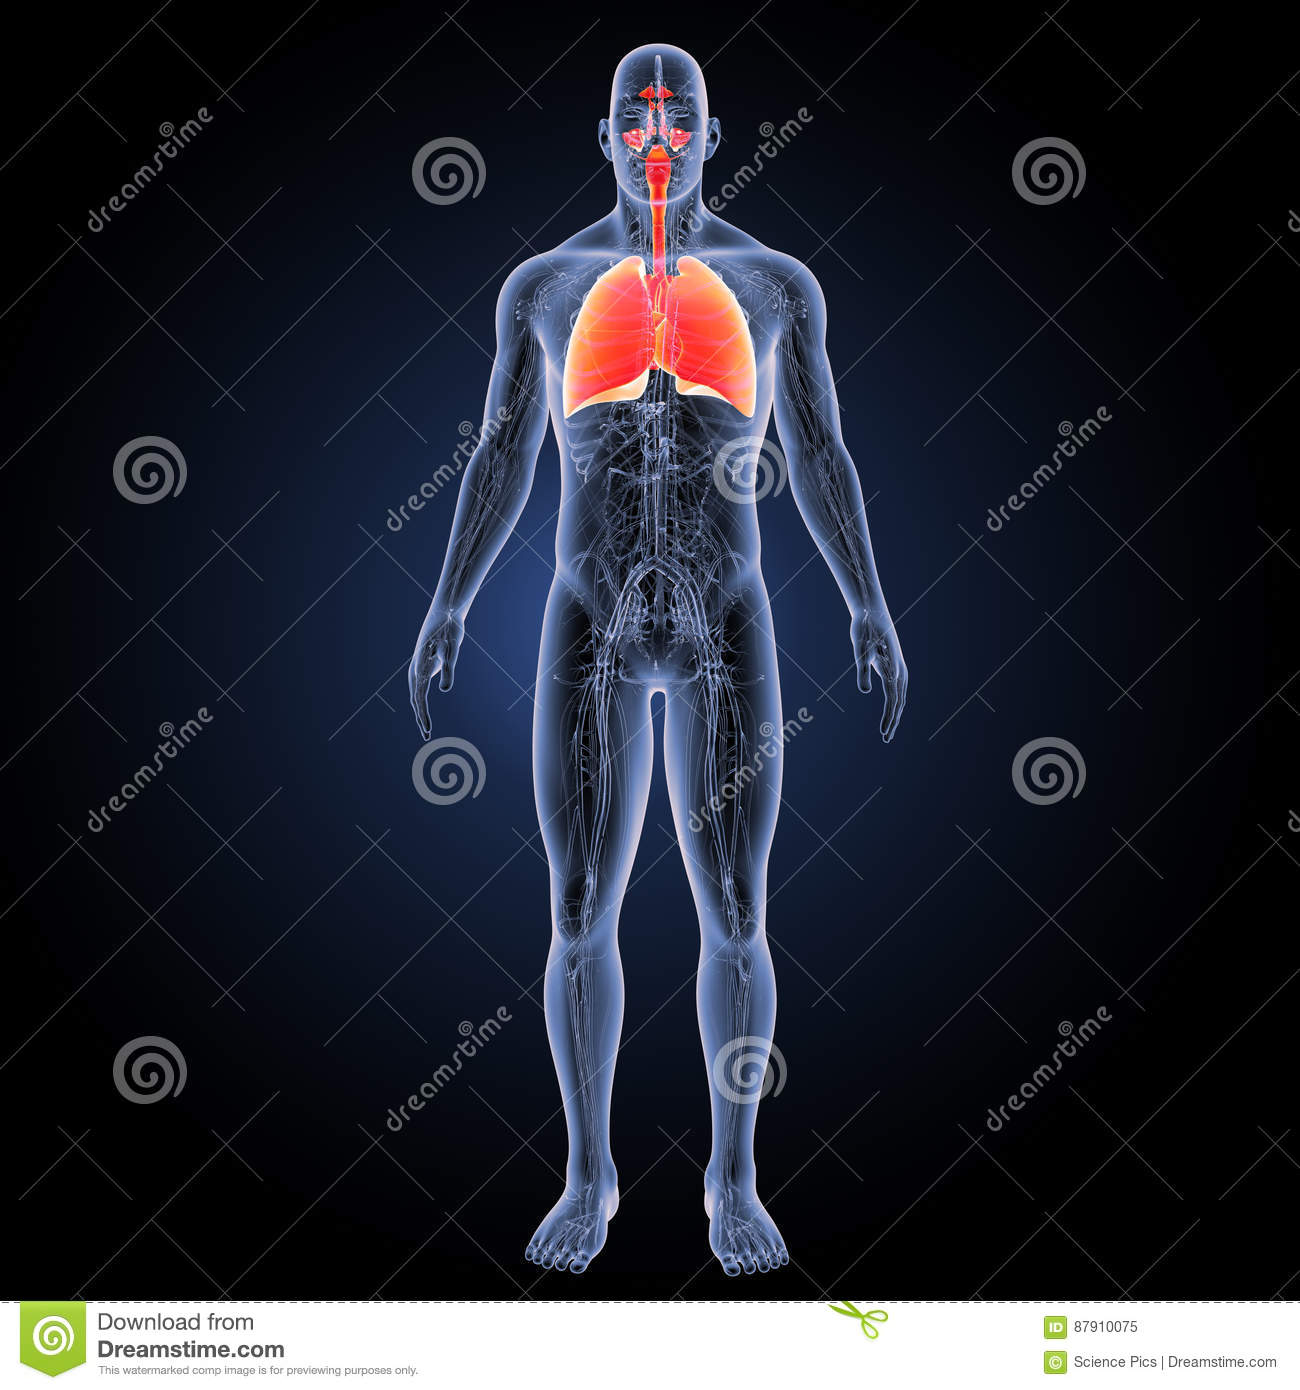 Respiratory System And Heart With Circulatory System Anterior View